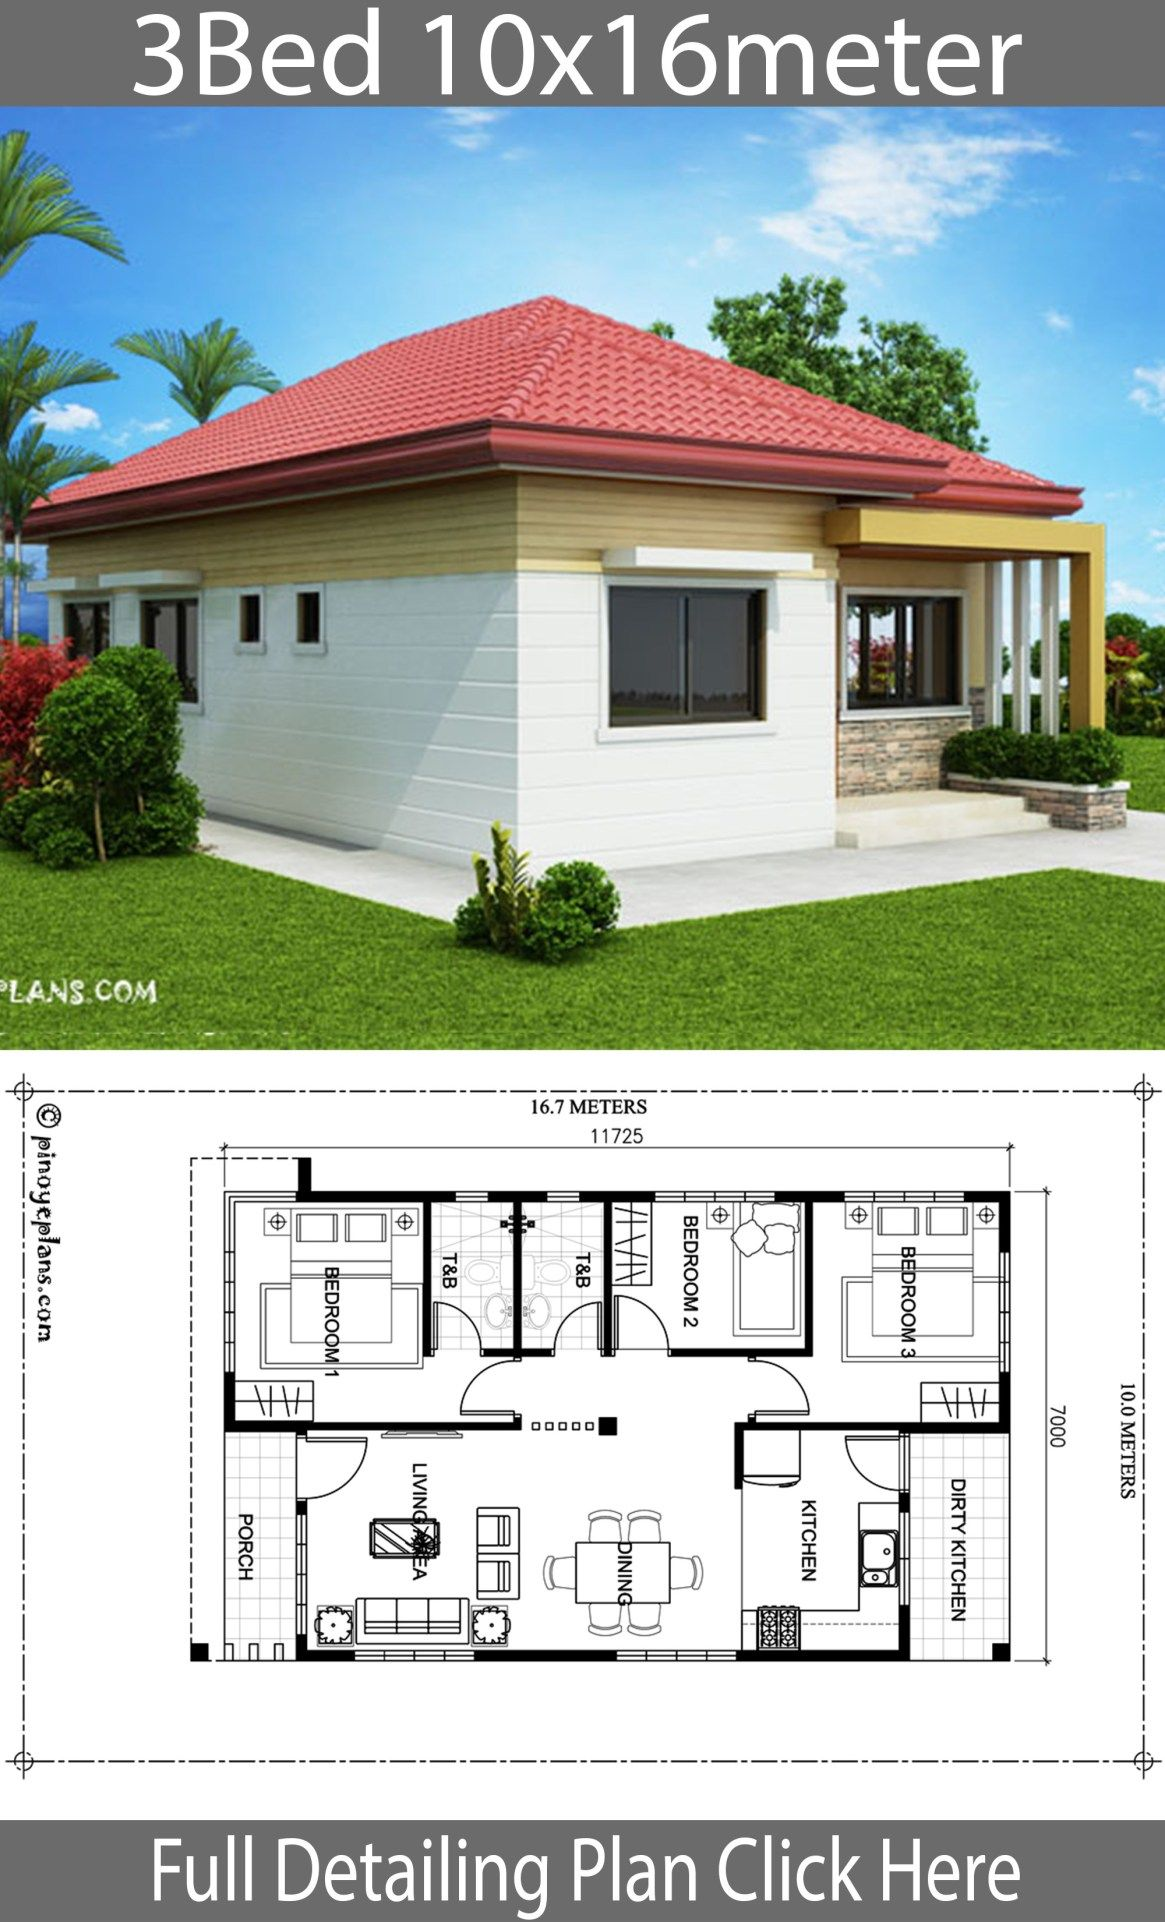 Home Design 10x16m With 3 Bedrooms Home Design With Plansearch Bungalow Style House Plans Cottage Style House Plans House Plan Gallery